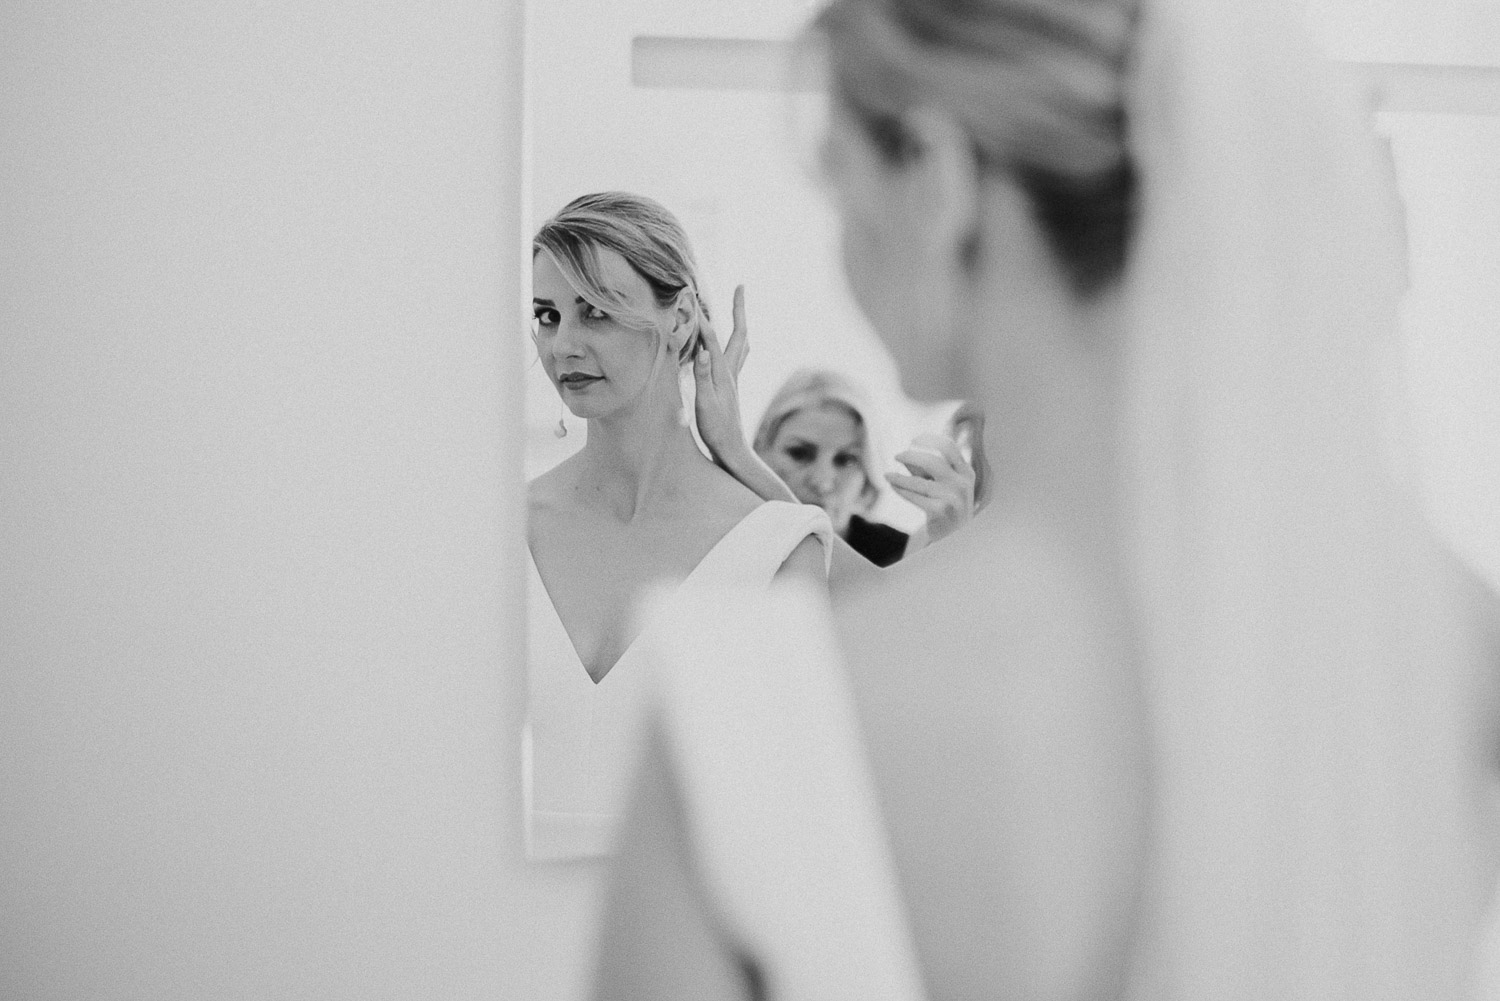 dordogne_eymet_wedding_france_katy_webb_photography_france_UK28